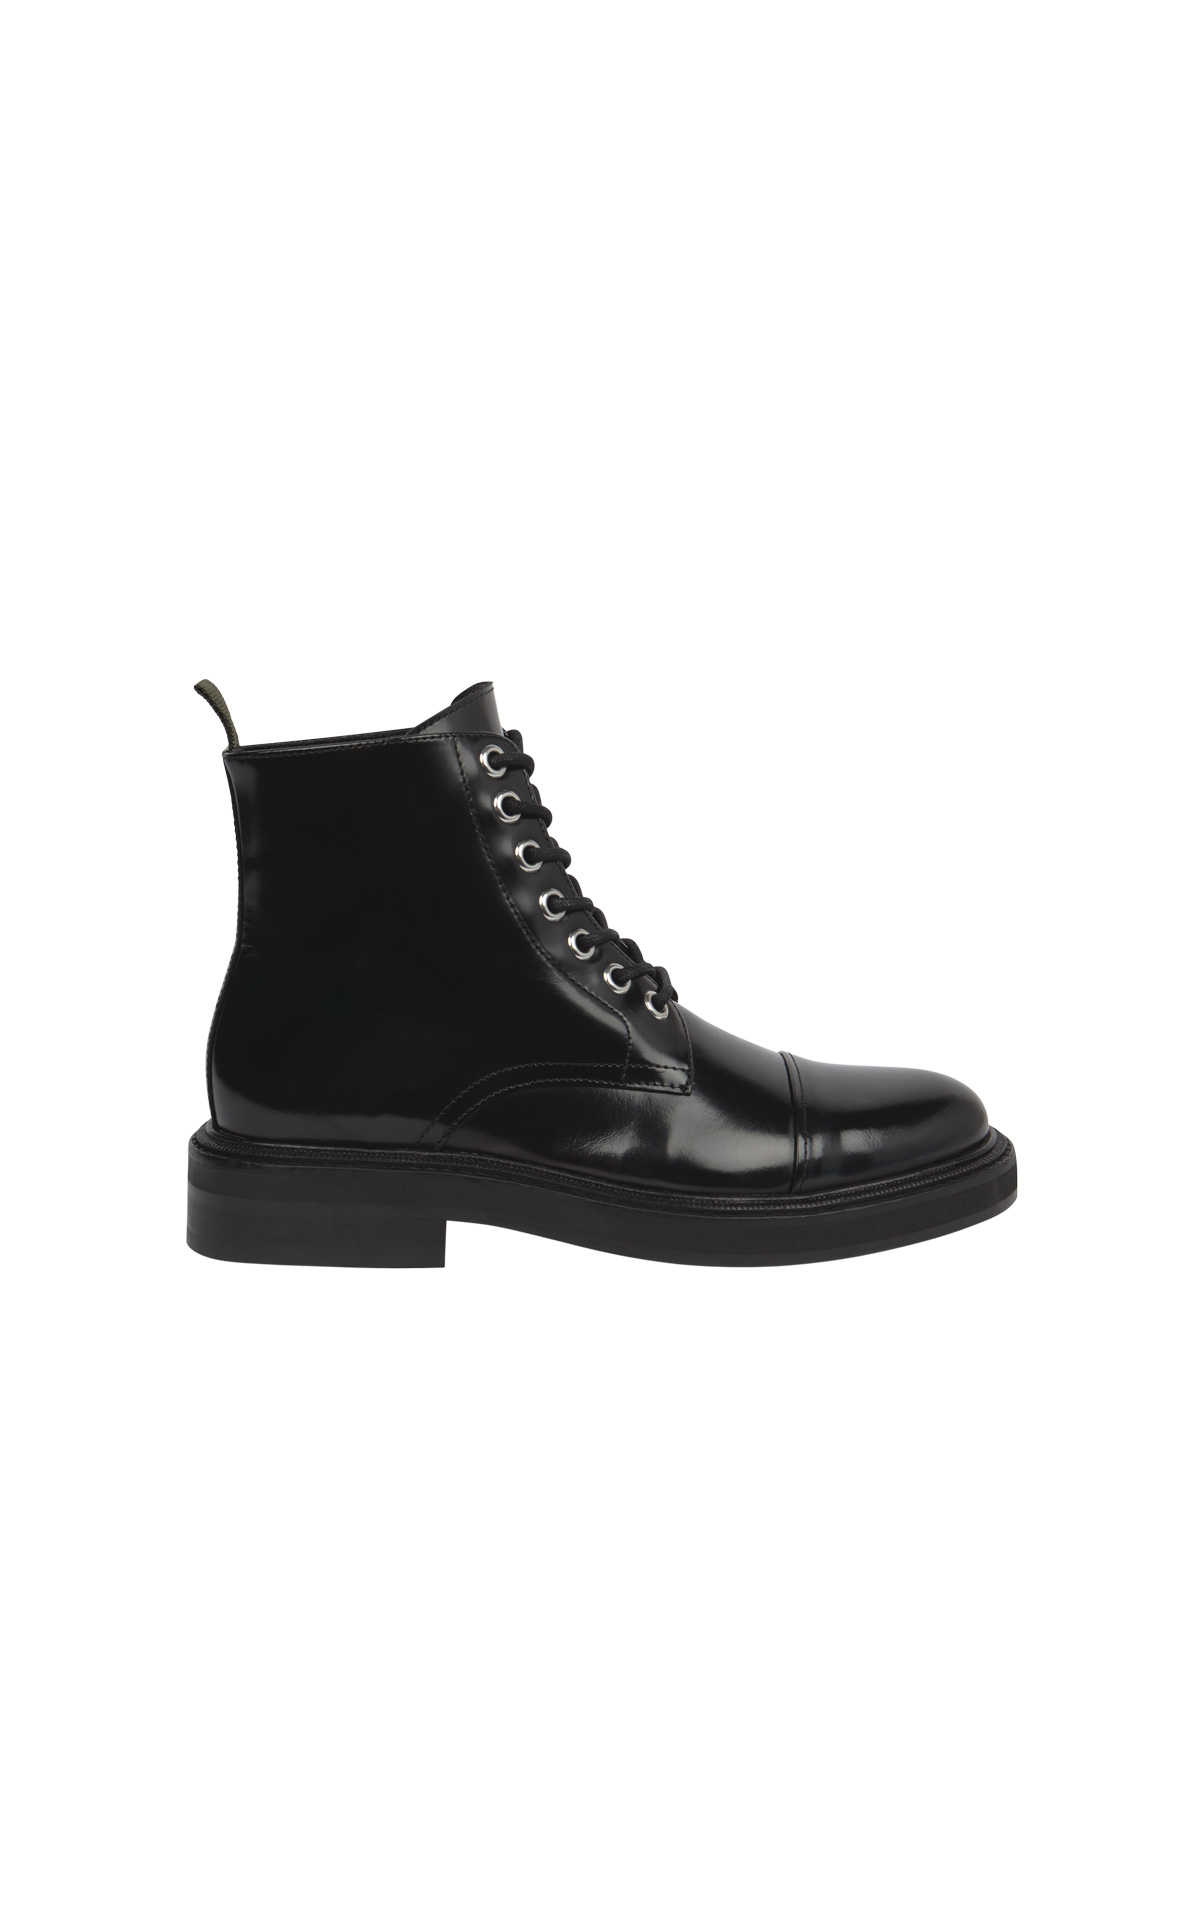 Black ankle boot man The Kooples